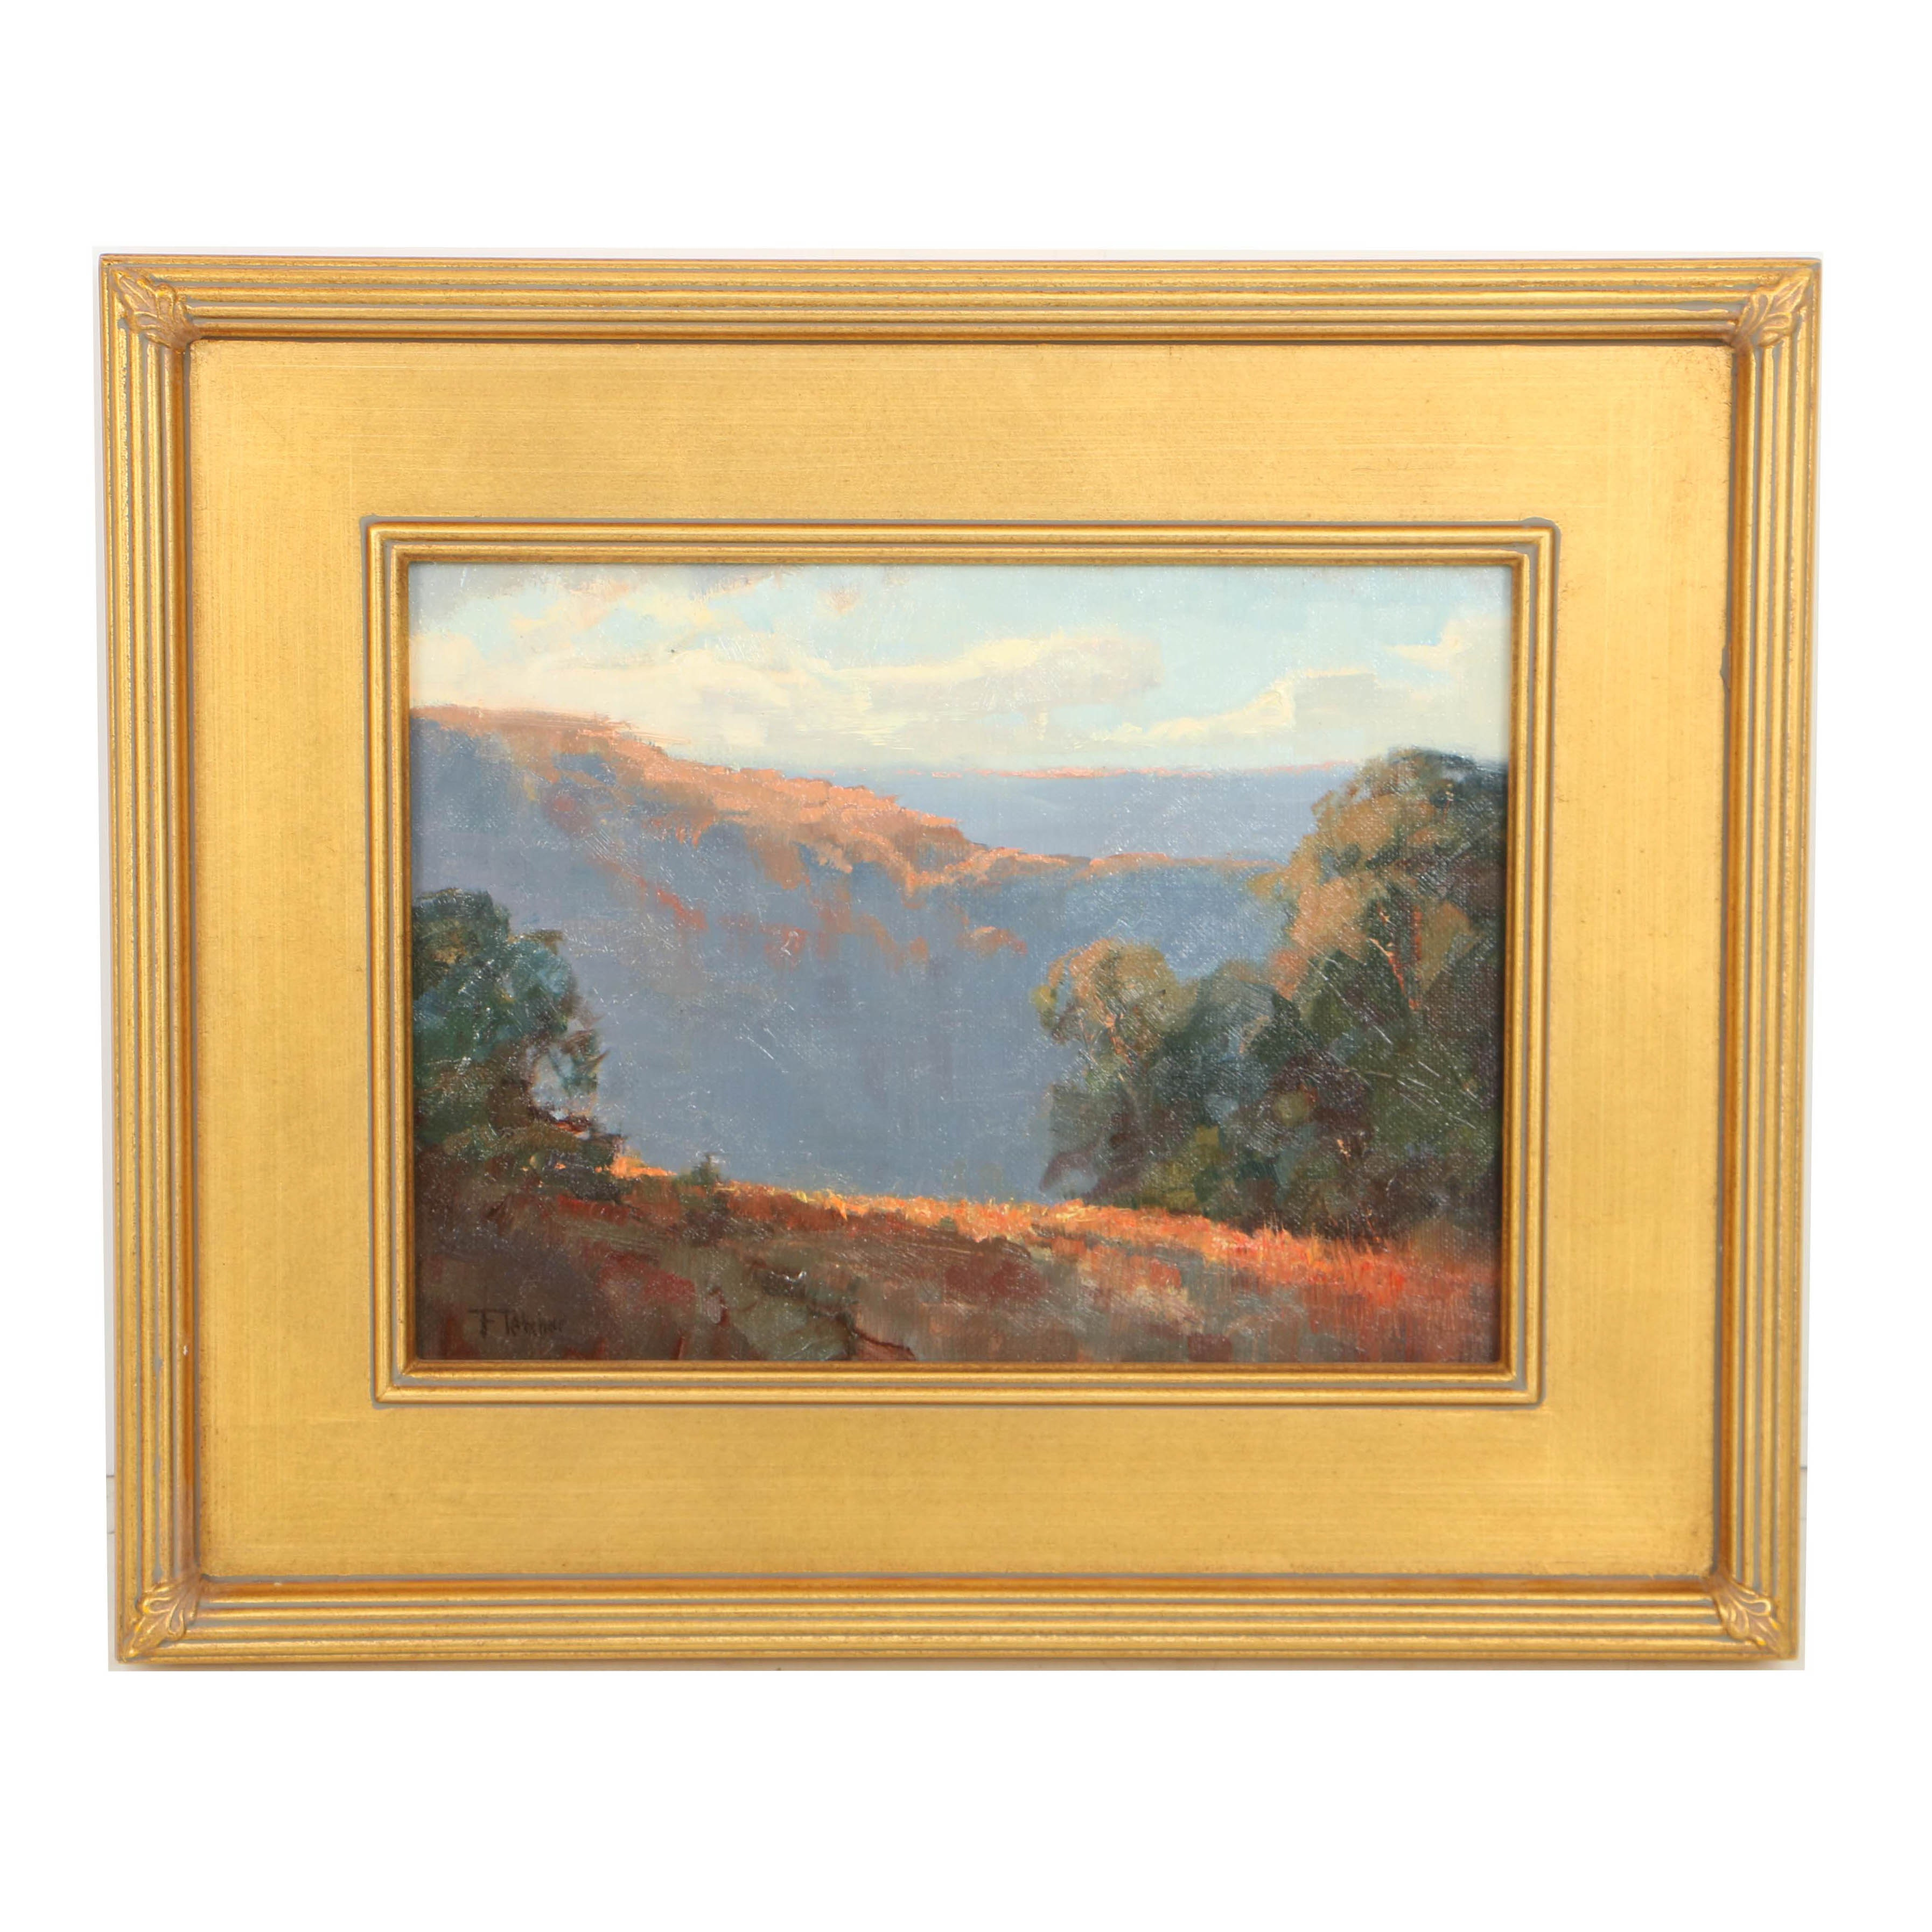 "Bill Fletcher Oil Painting on Canvas ""Palisades Highlands"""